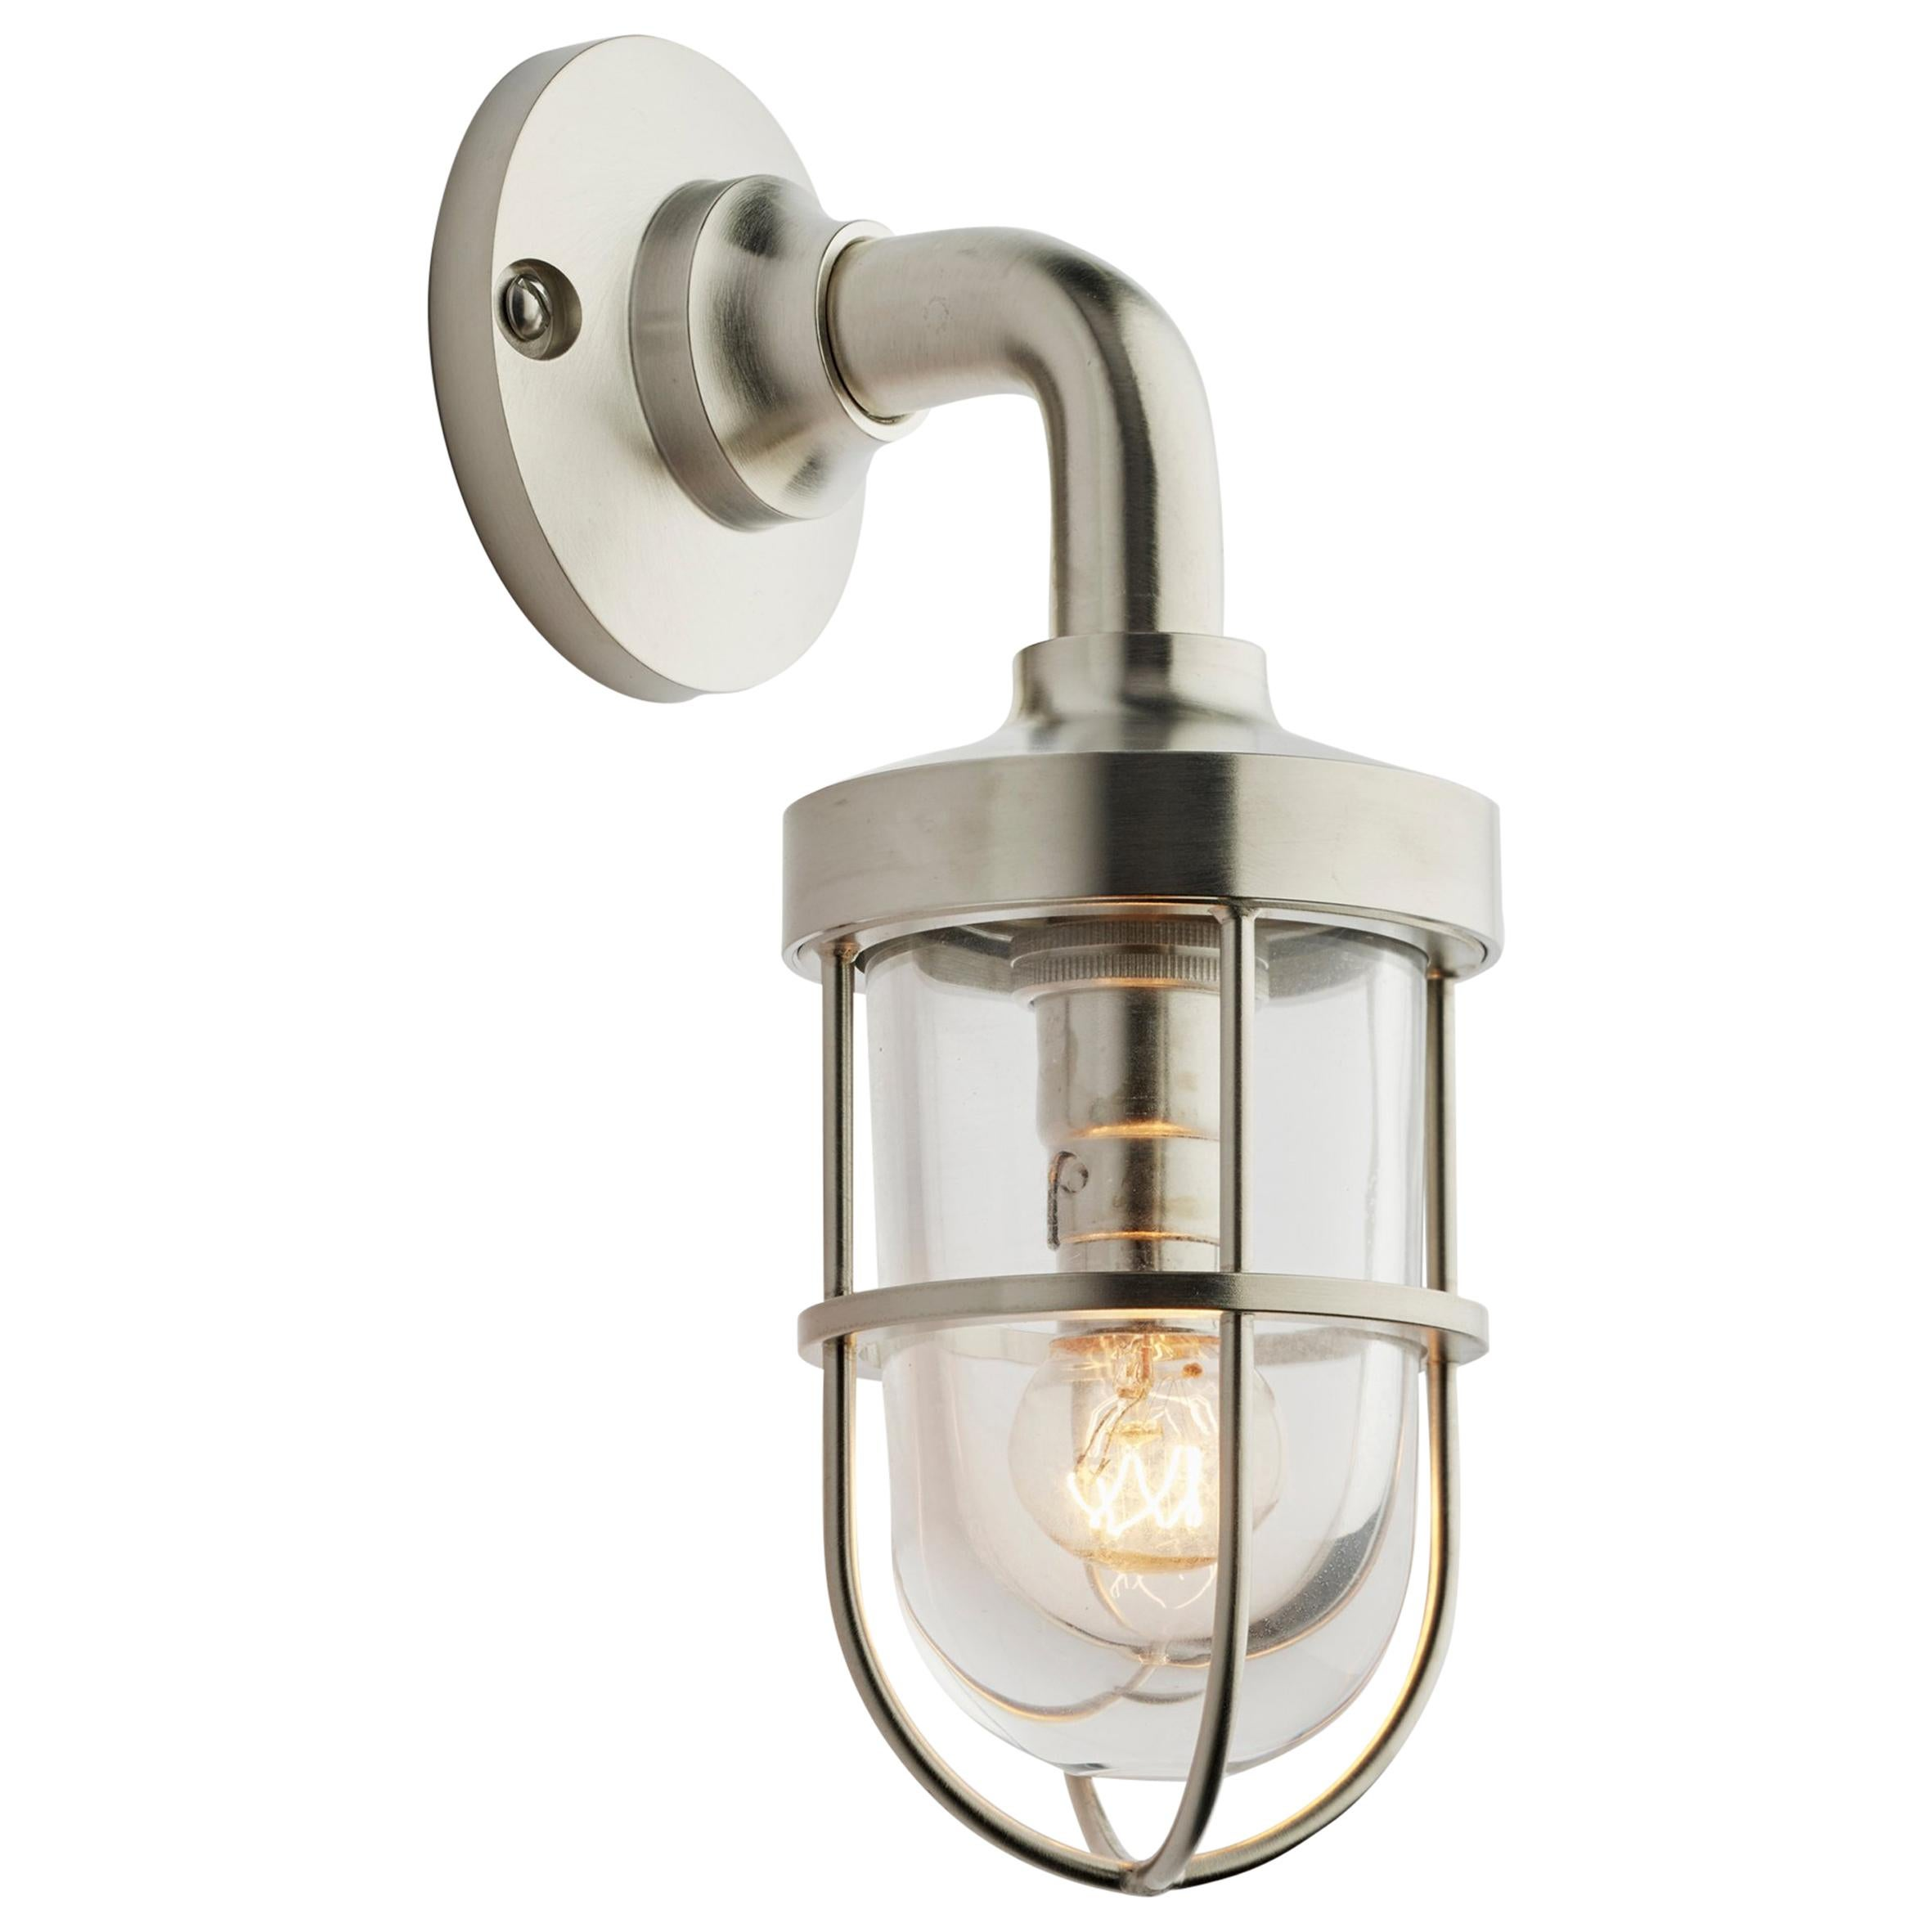 Tekna Bounty Wall 230V LED with Brushed Nickel Finish and Clear Glass